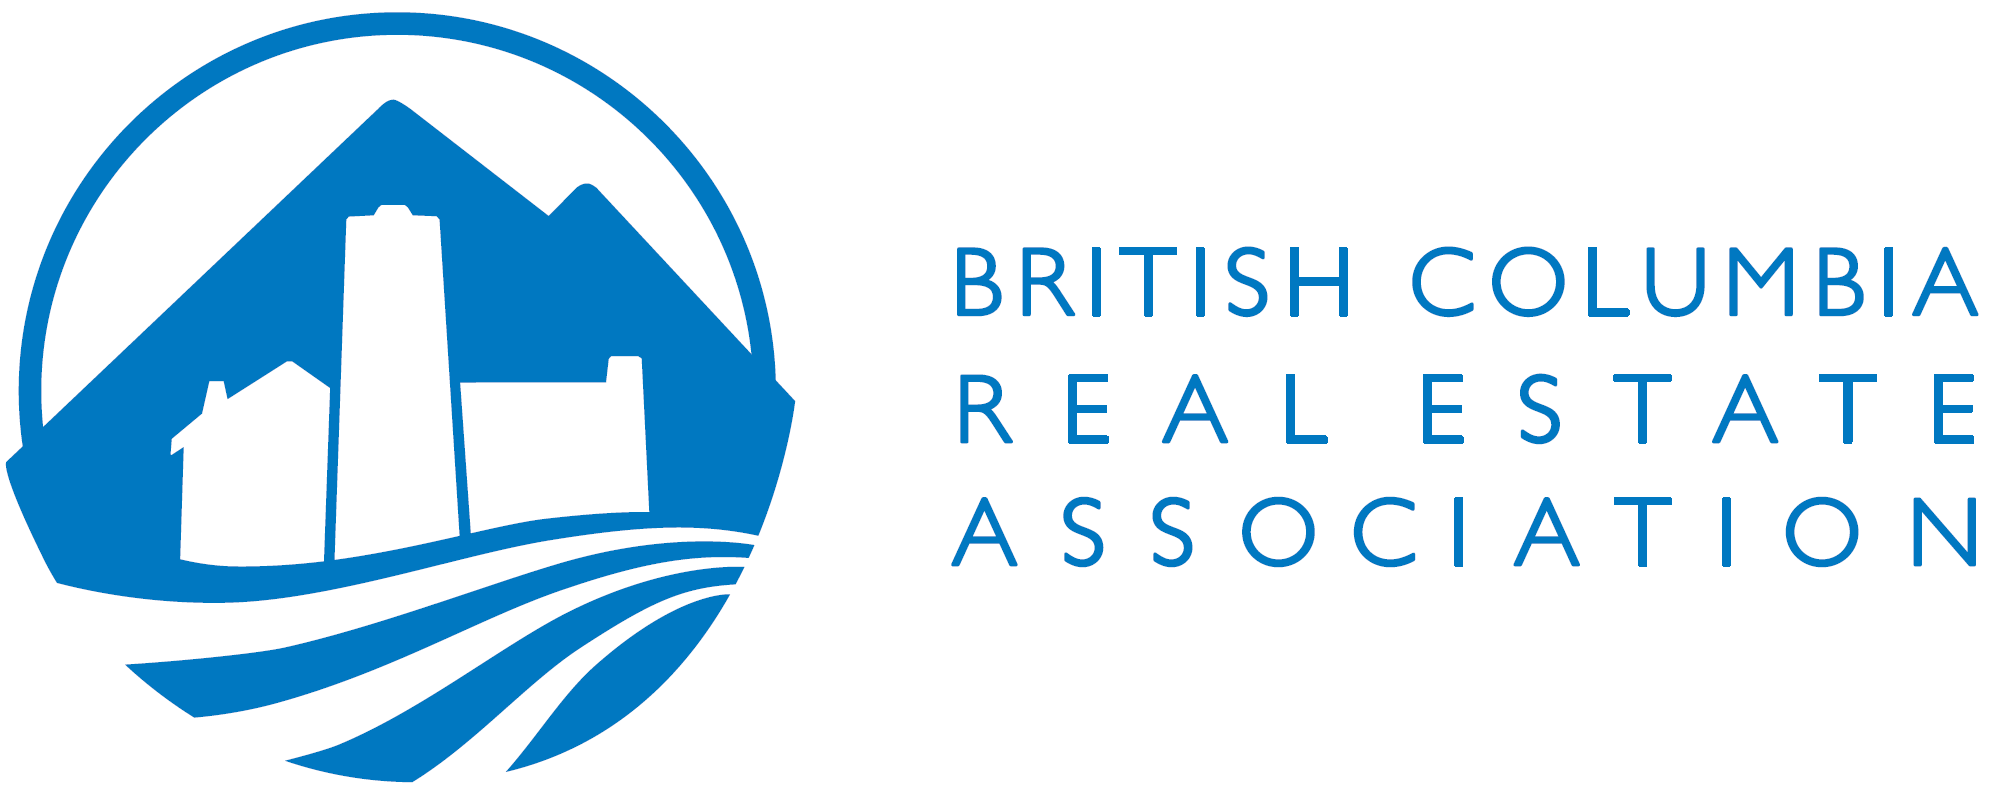 B.C. Real Estate Association says residential home sales were down in February due to tougher mortgage rules